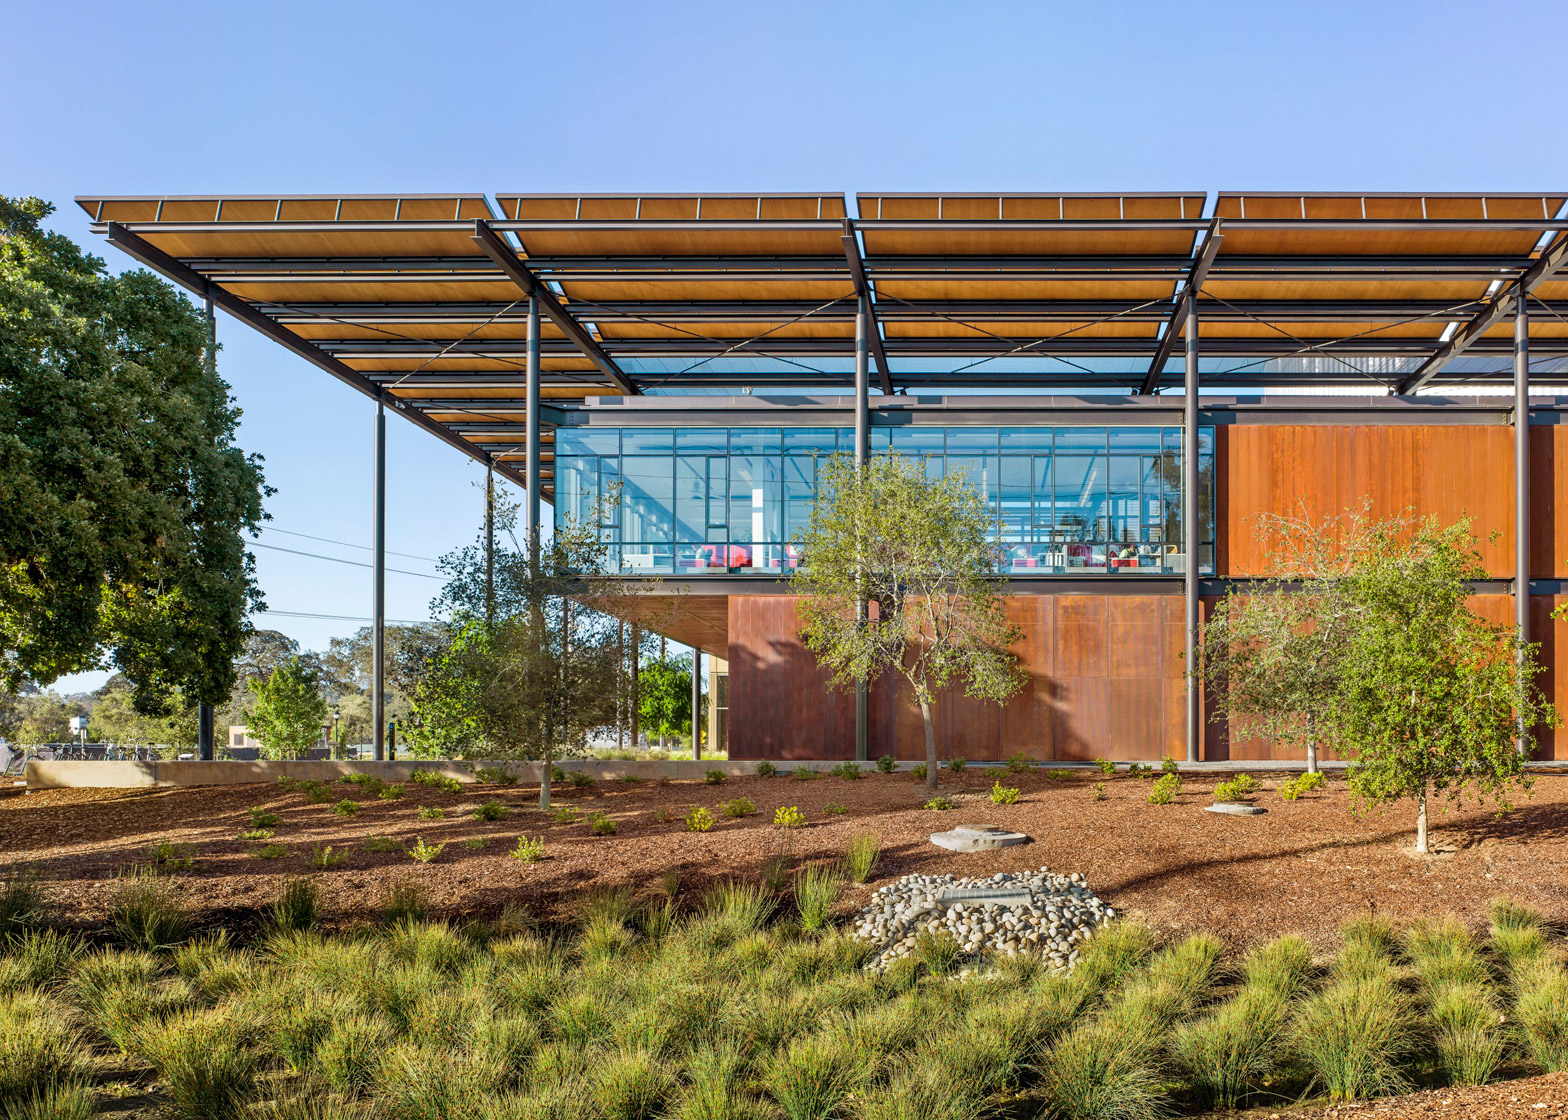 Photograph by Robert Canfield Stanford University Central Energy Facility by ZGF Architects in California, USA